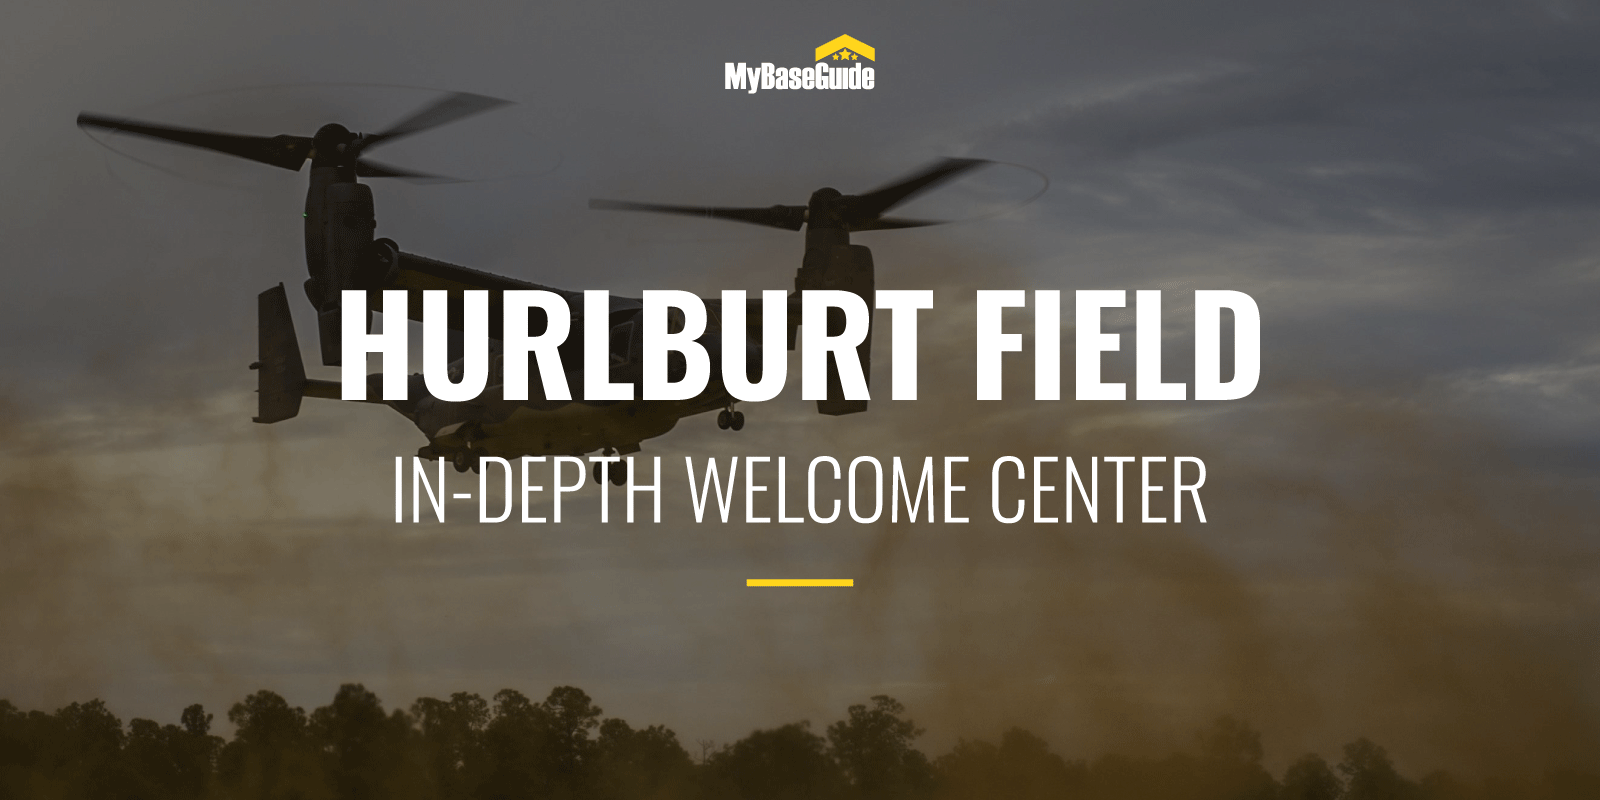 Hurlburt Field, FL: In-Depth Welcome Center